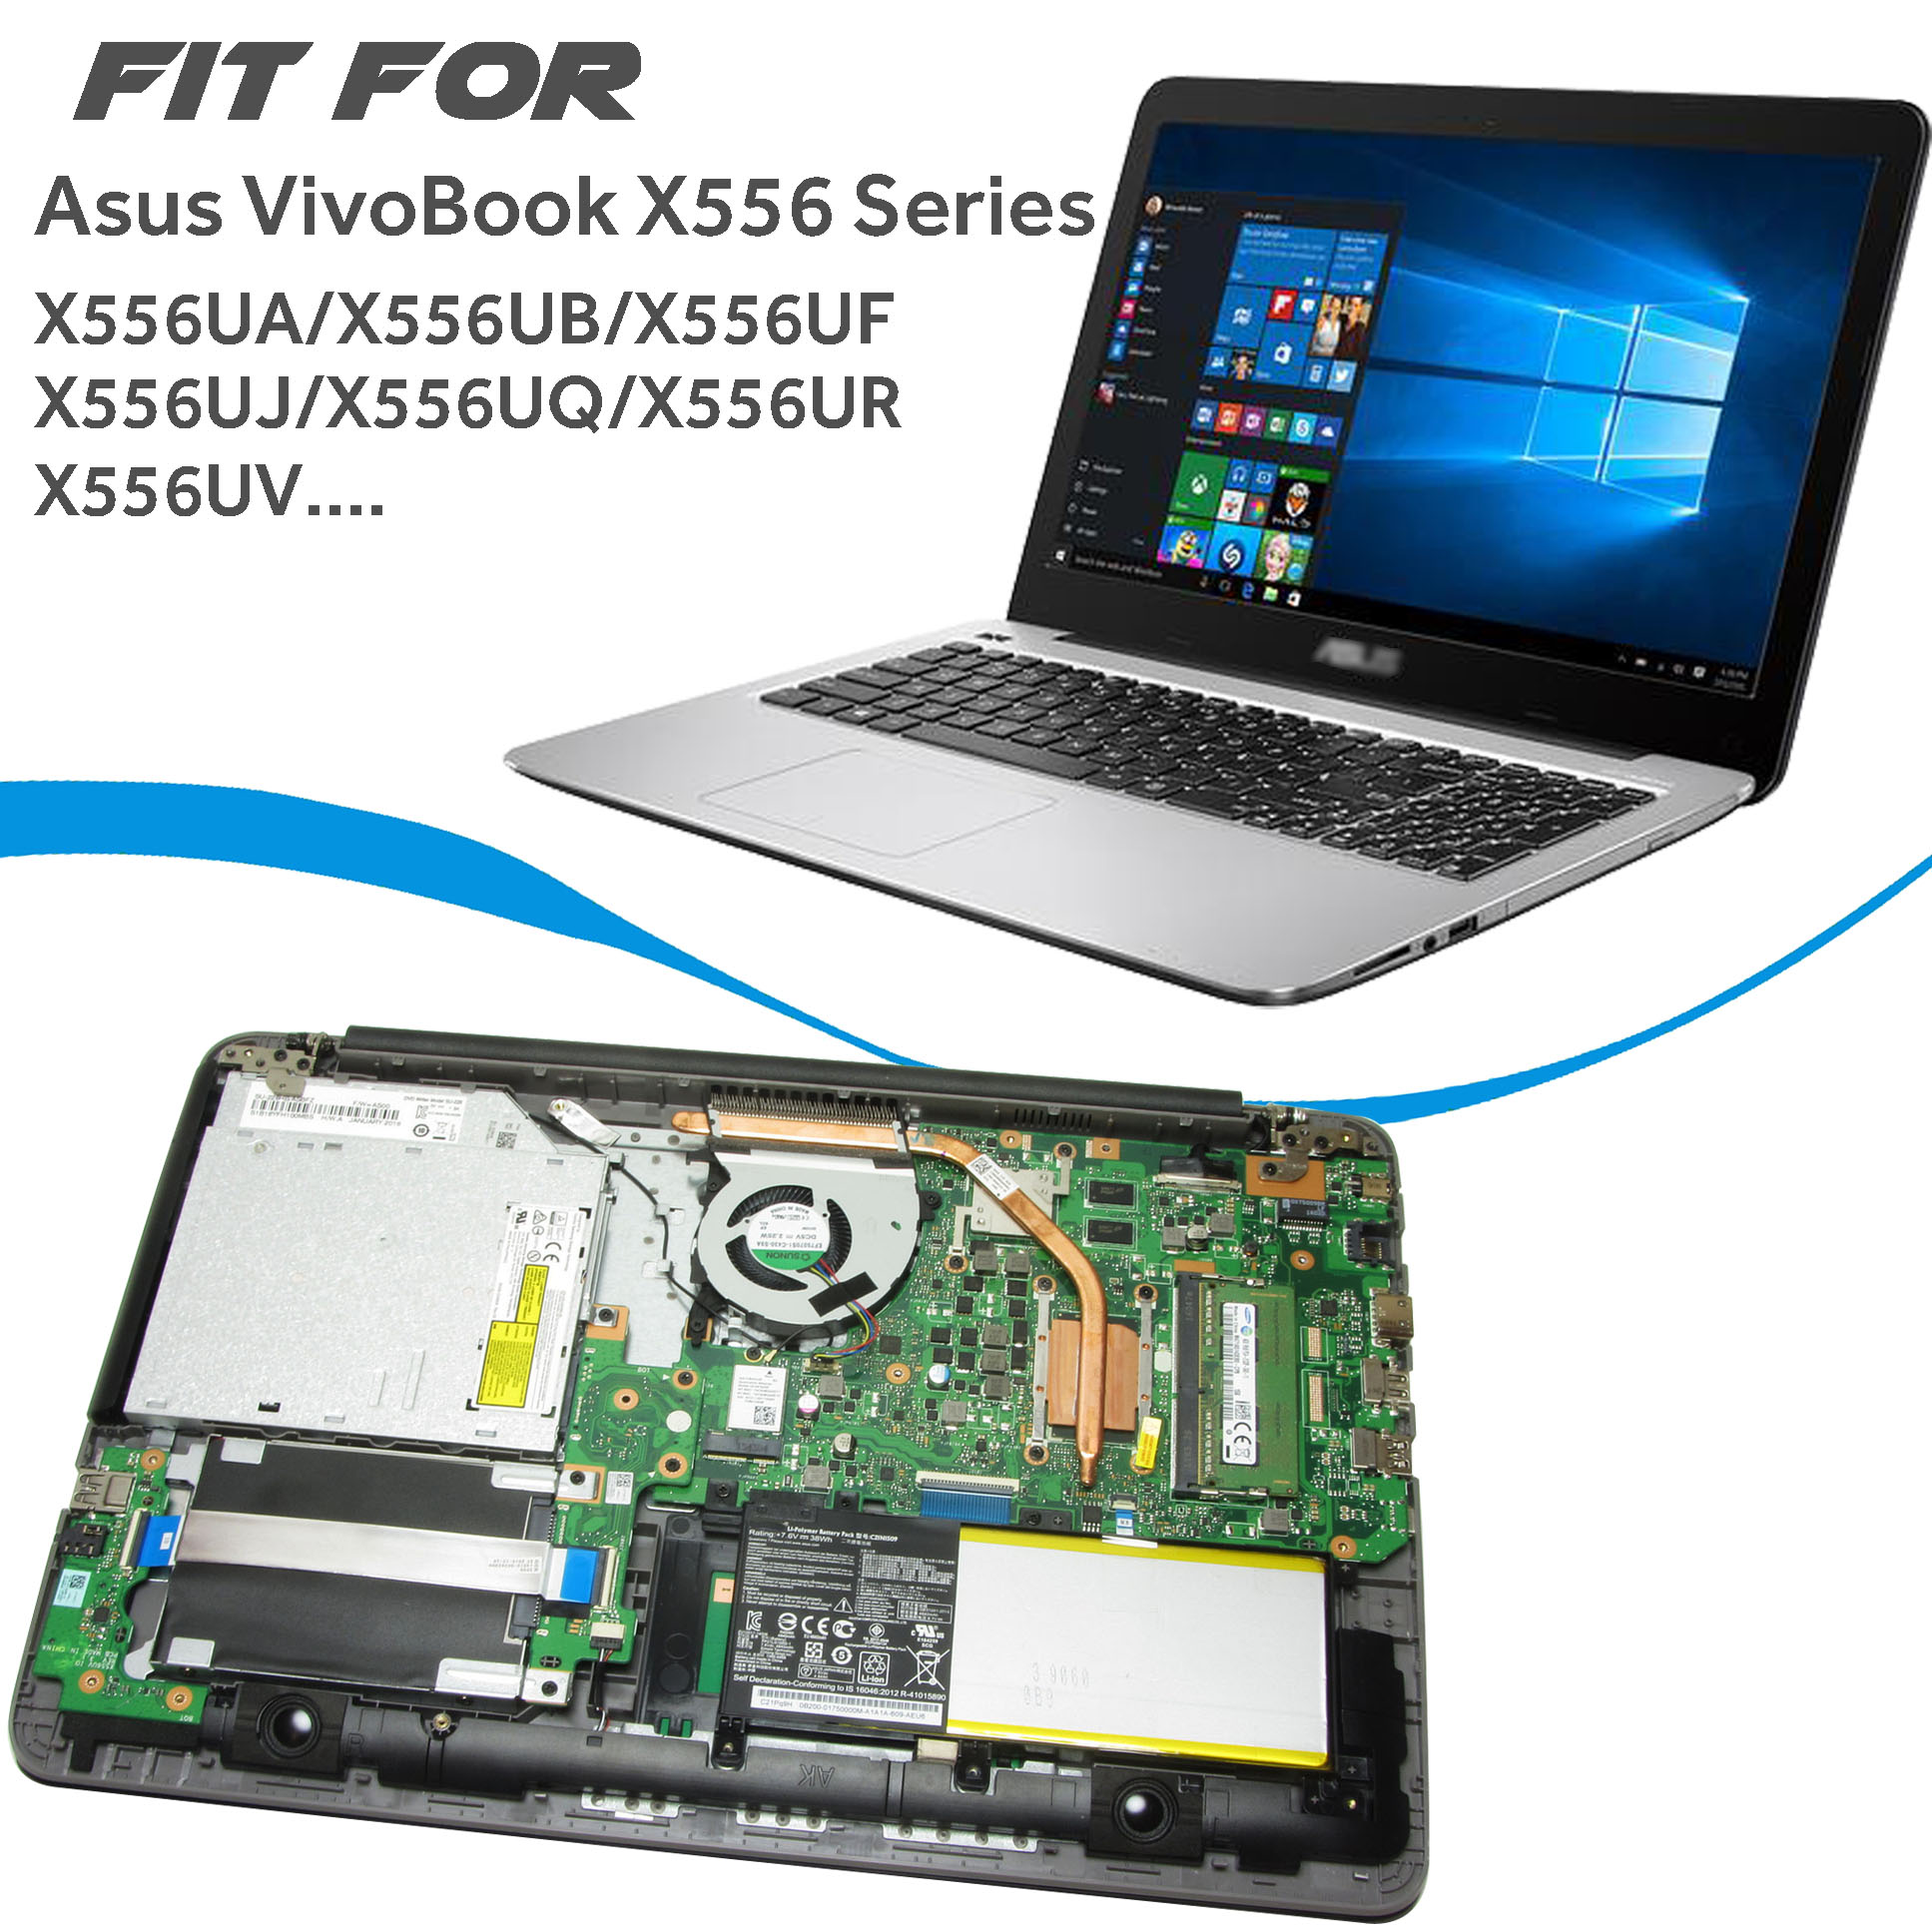 Asus VivoBook X556UJ Laptop Treiber Windows XP